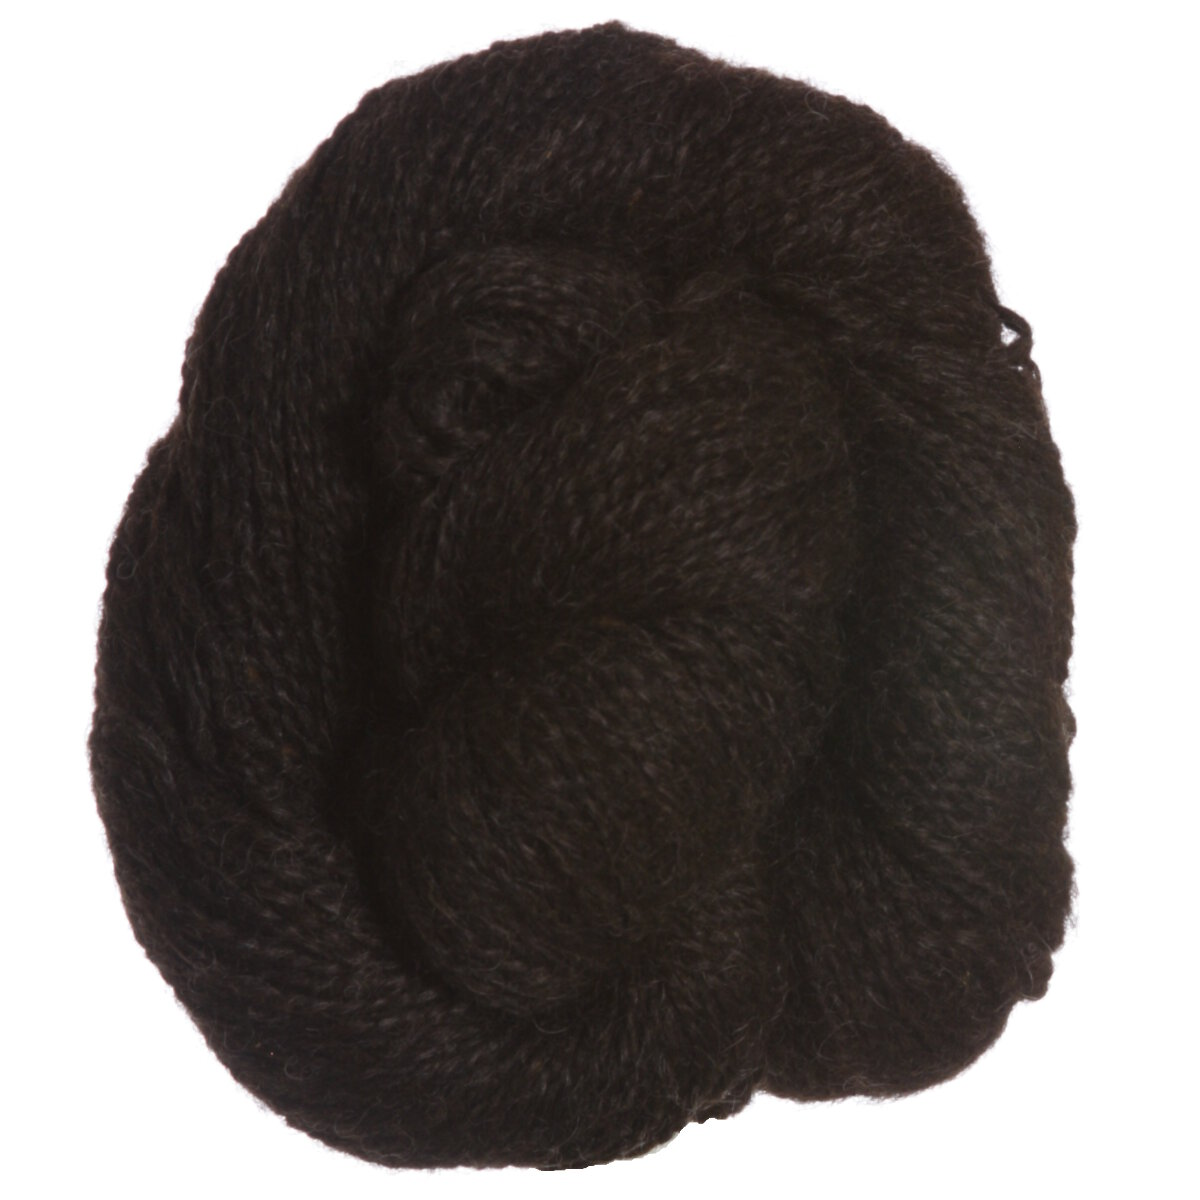 Knitting Patterns For Wensleydale Wool : Lost Coast Weavers Wensleydale Wool 2-Packs Yarn - Black at Jimmy Beans Wool